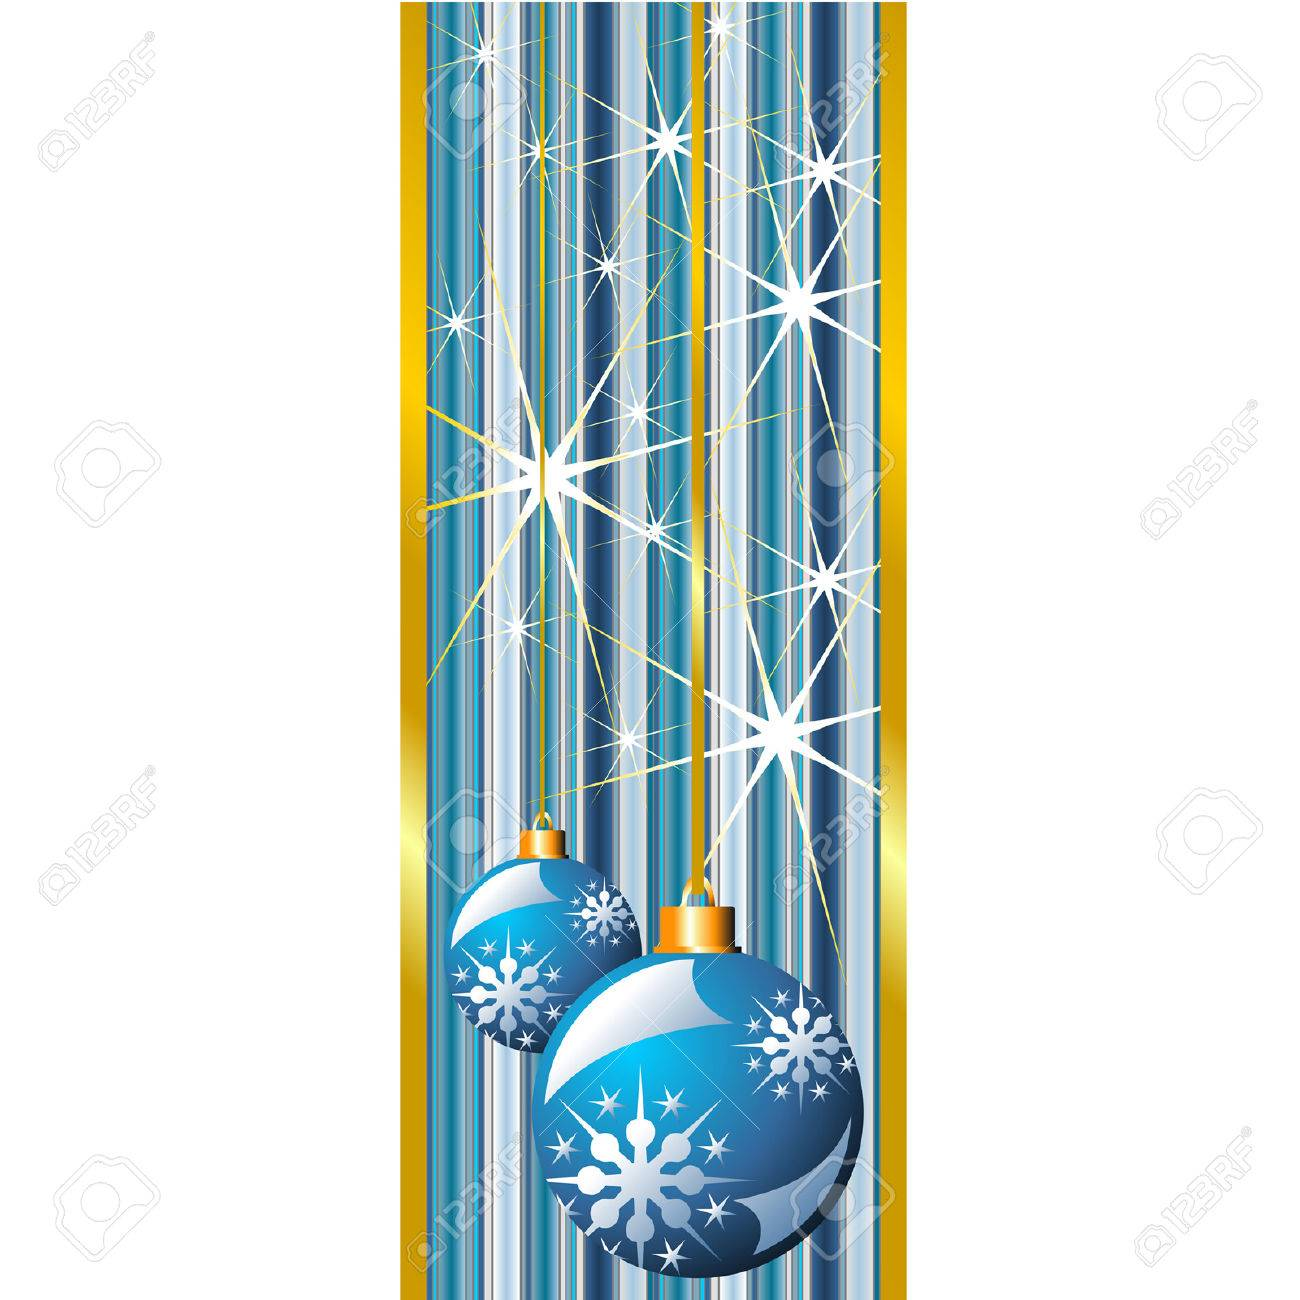 Blue Christmas banner with snow crystals and balls Stock Vector - 5327155